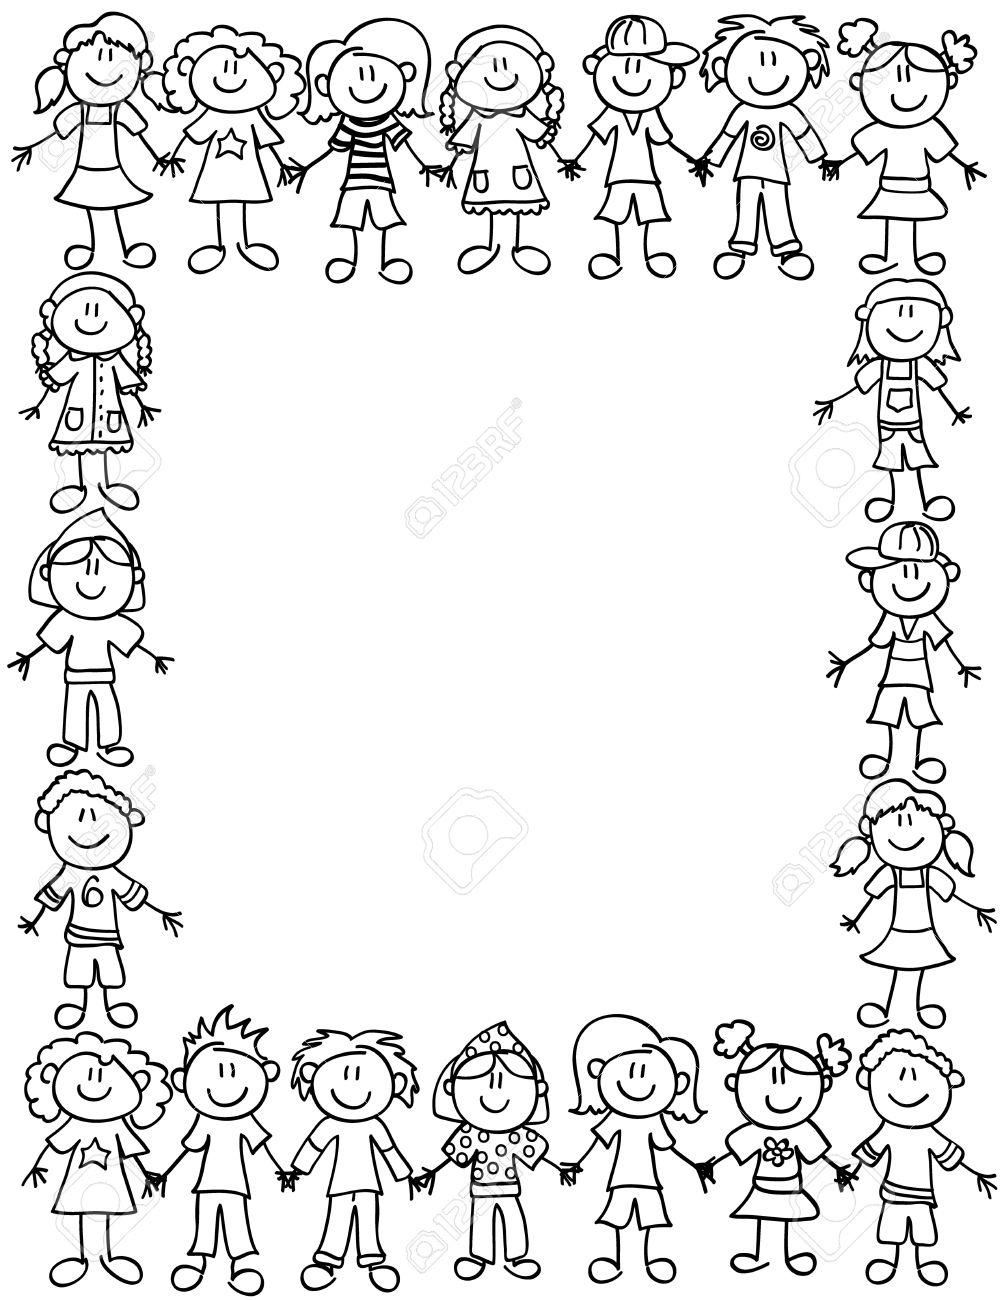 1004x1300 Border Design Drawing For Boys Frame Or Page Border Of Cute Kid